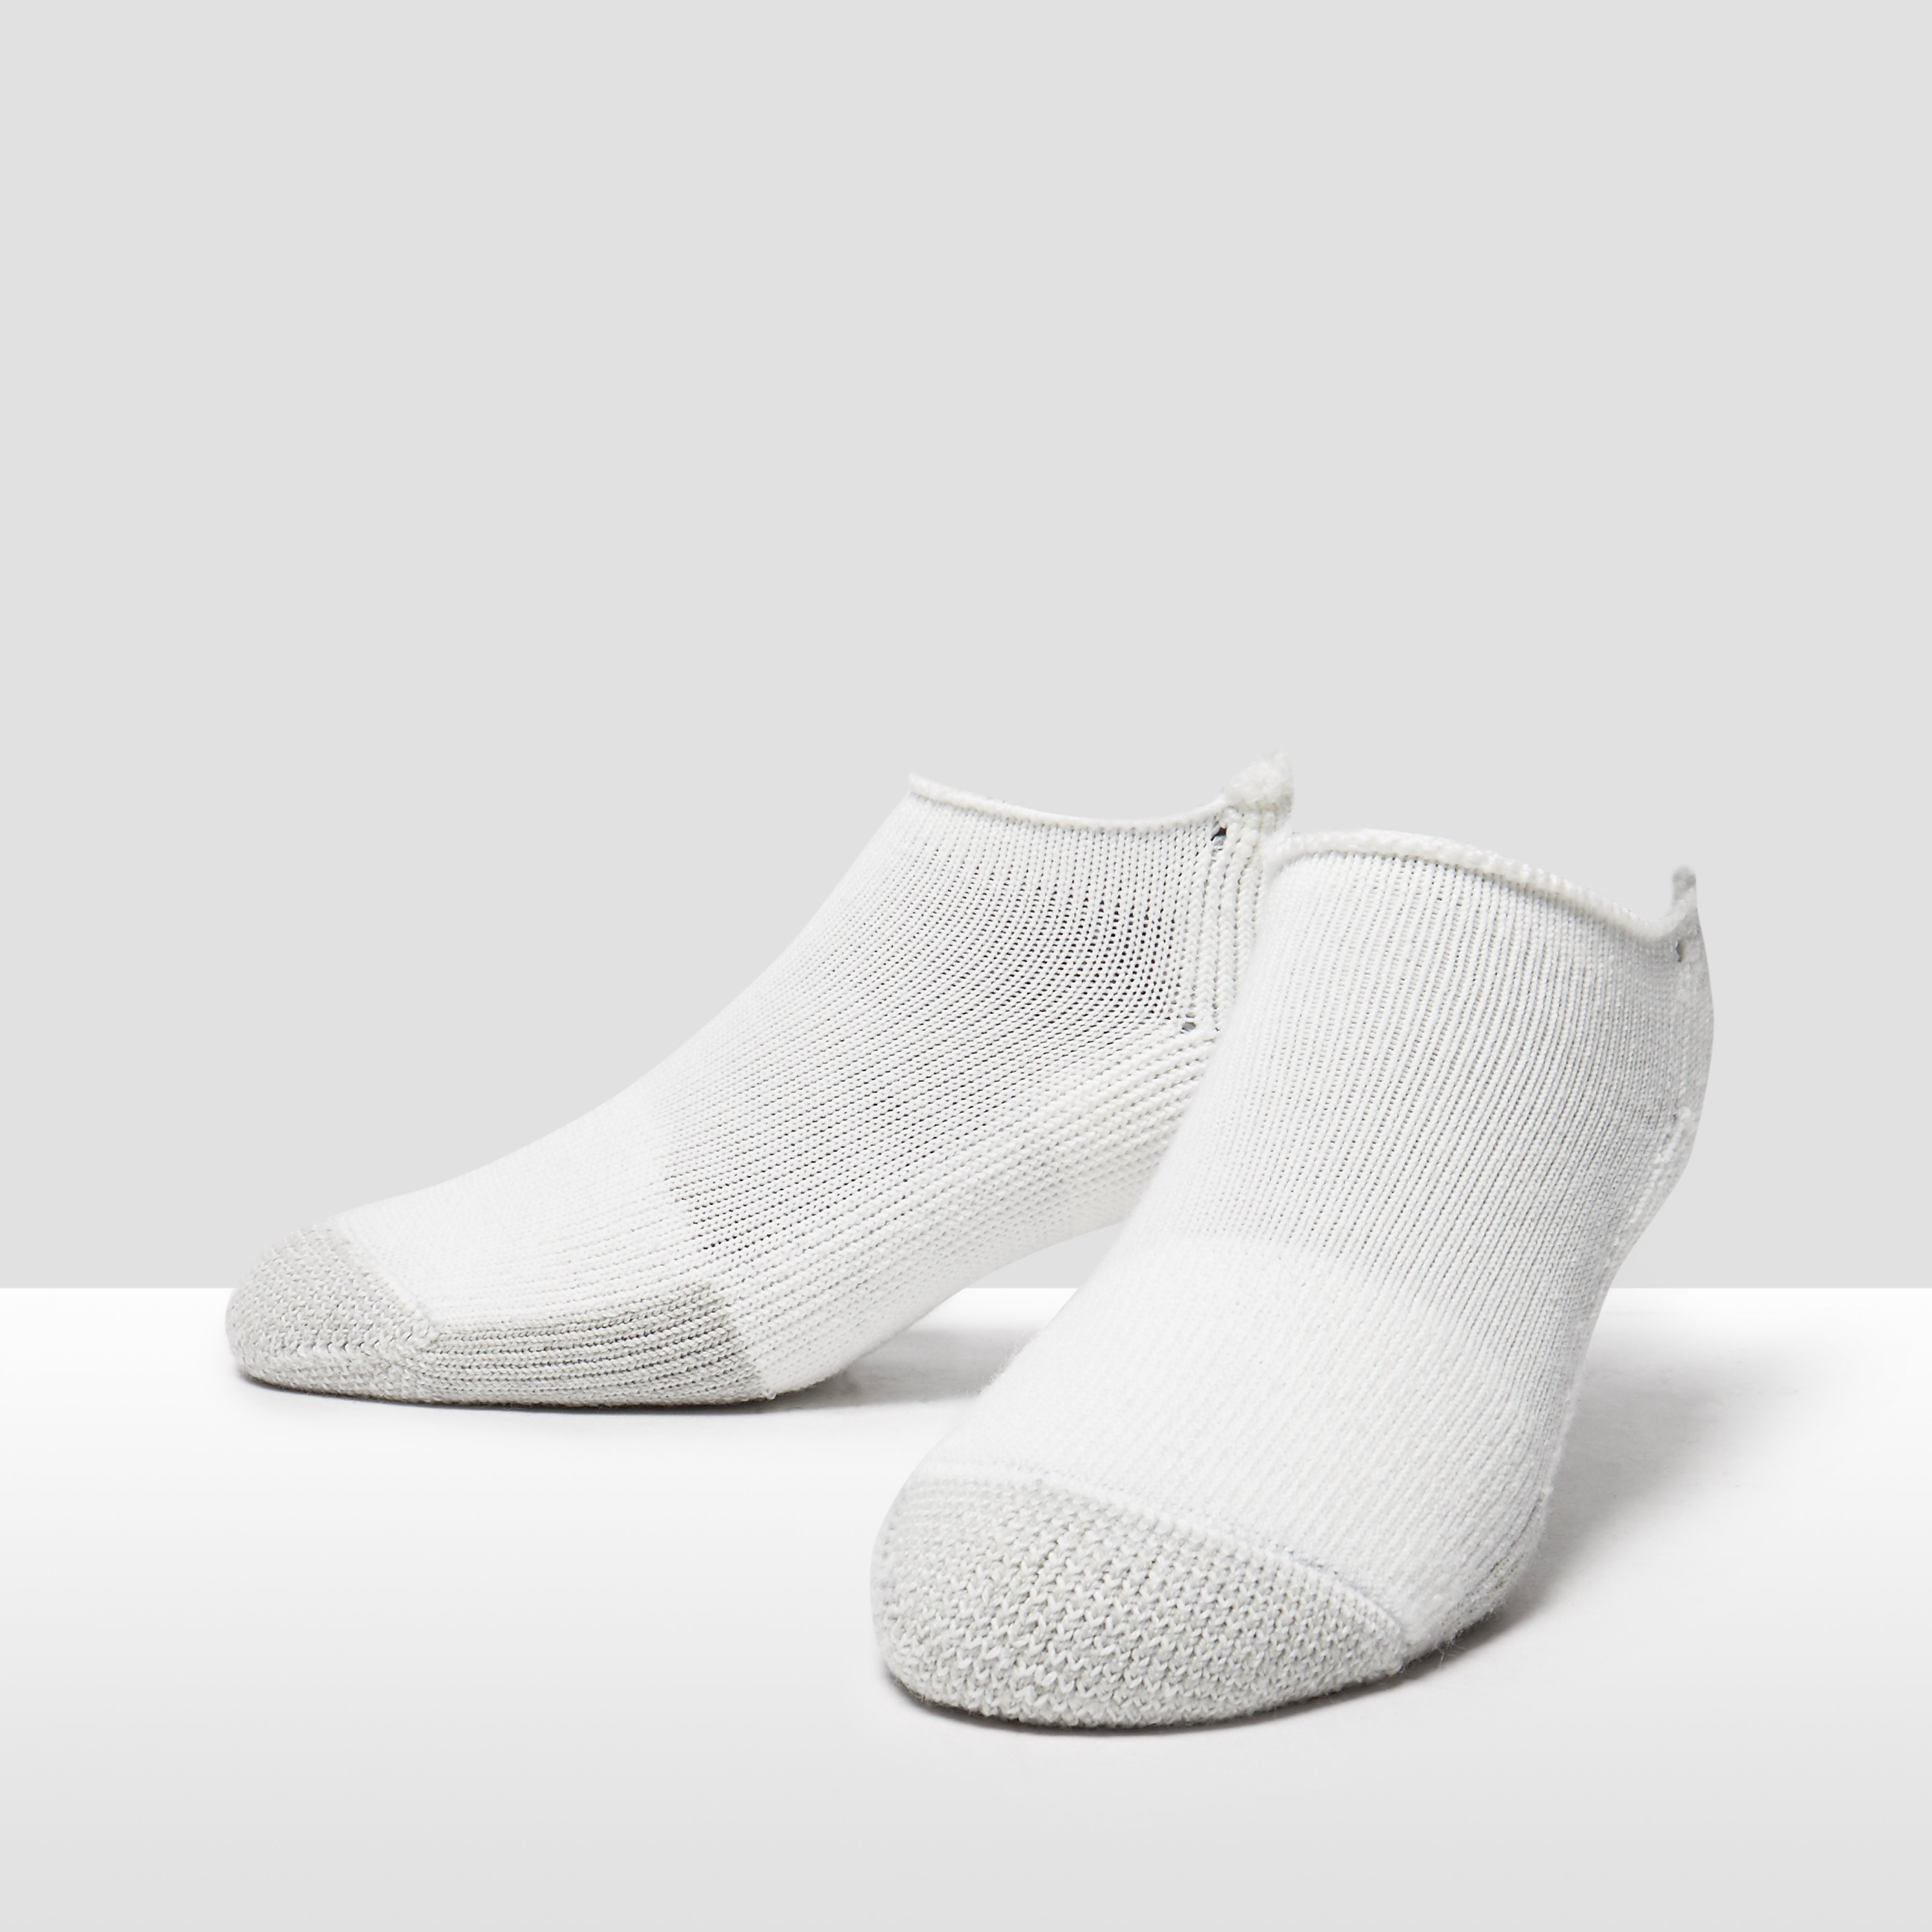 Thorlo 1 Pair Tennis Rolltop Socks